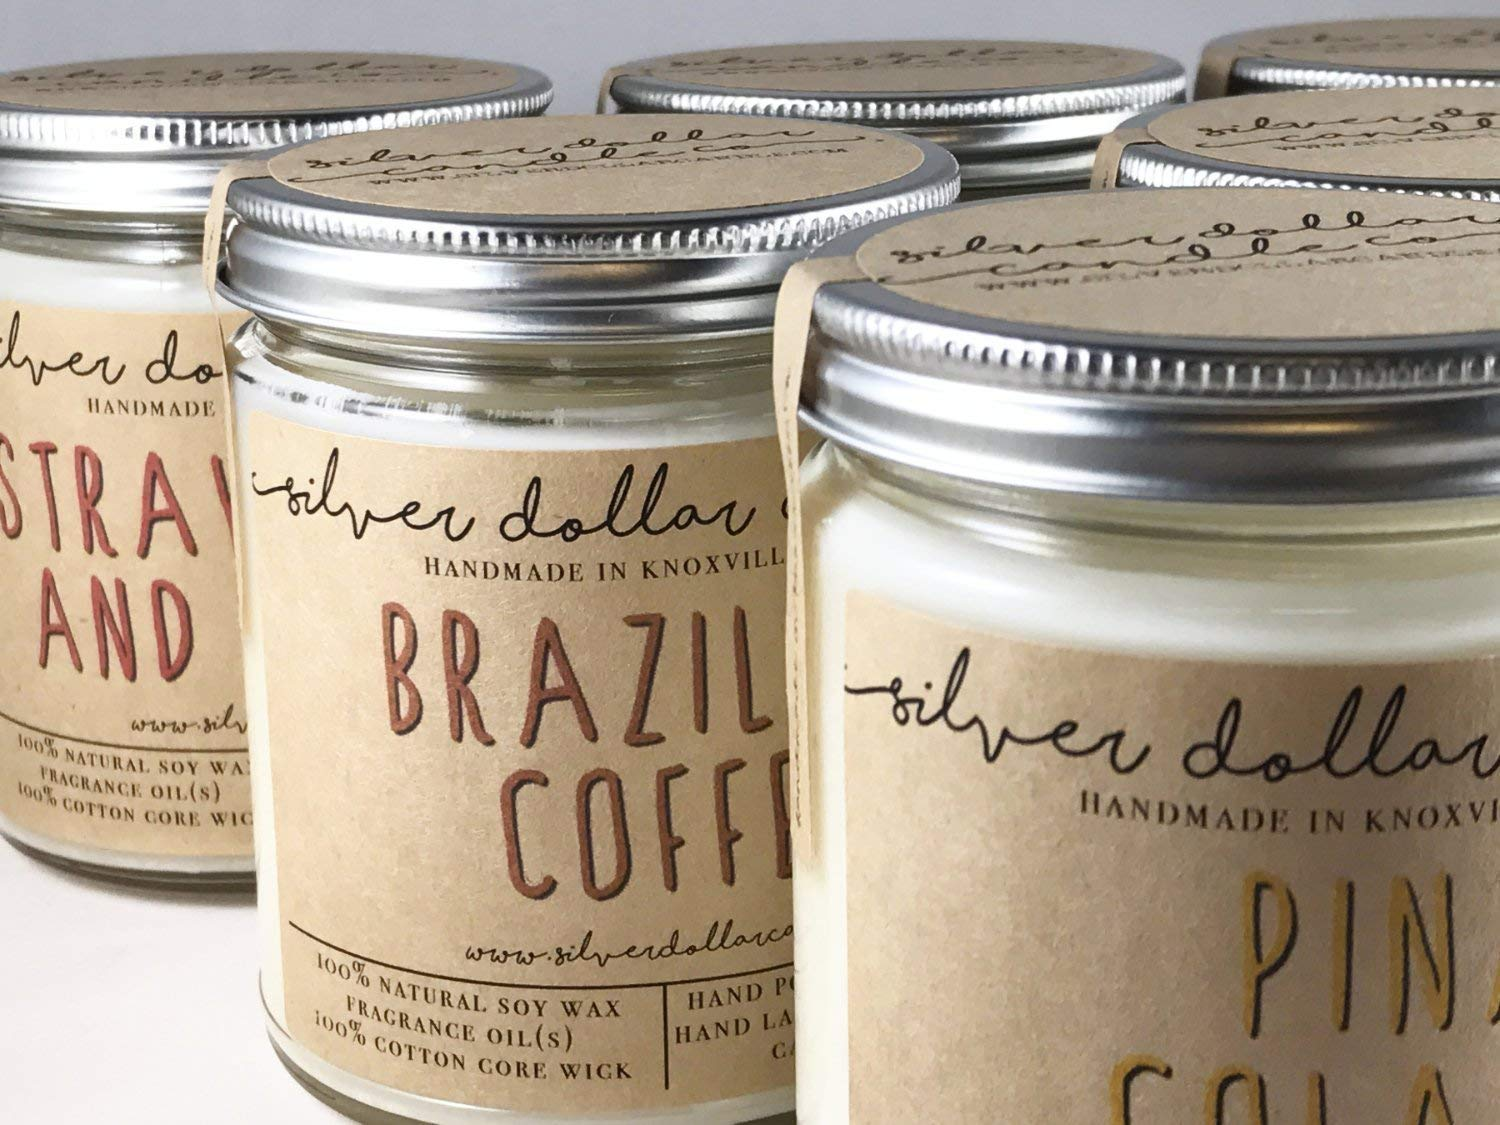 Personalized 8oz Handmade 100% Soy Wax Scented Candle by Silver Dollar Candle Co. by Silver Dollar Candle Co. (Image #8)